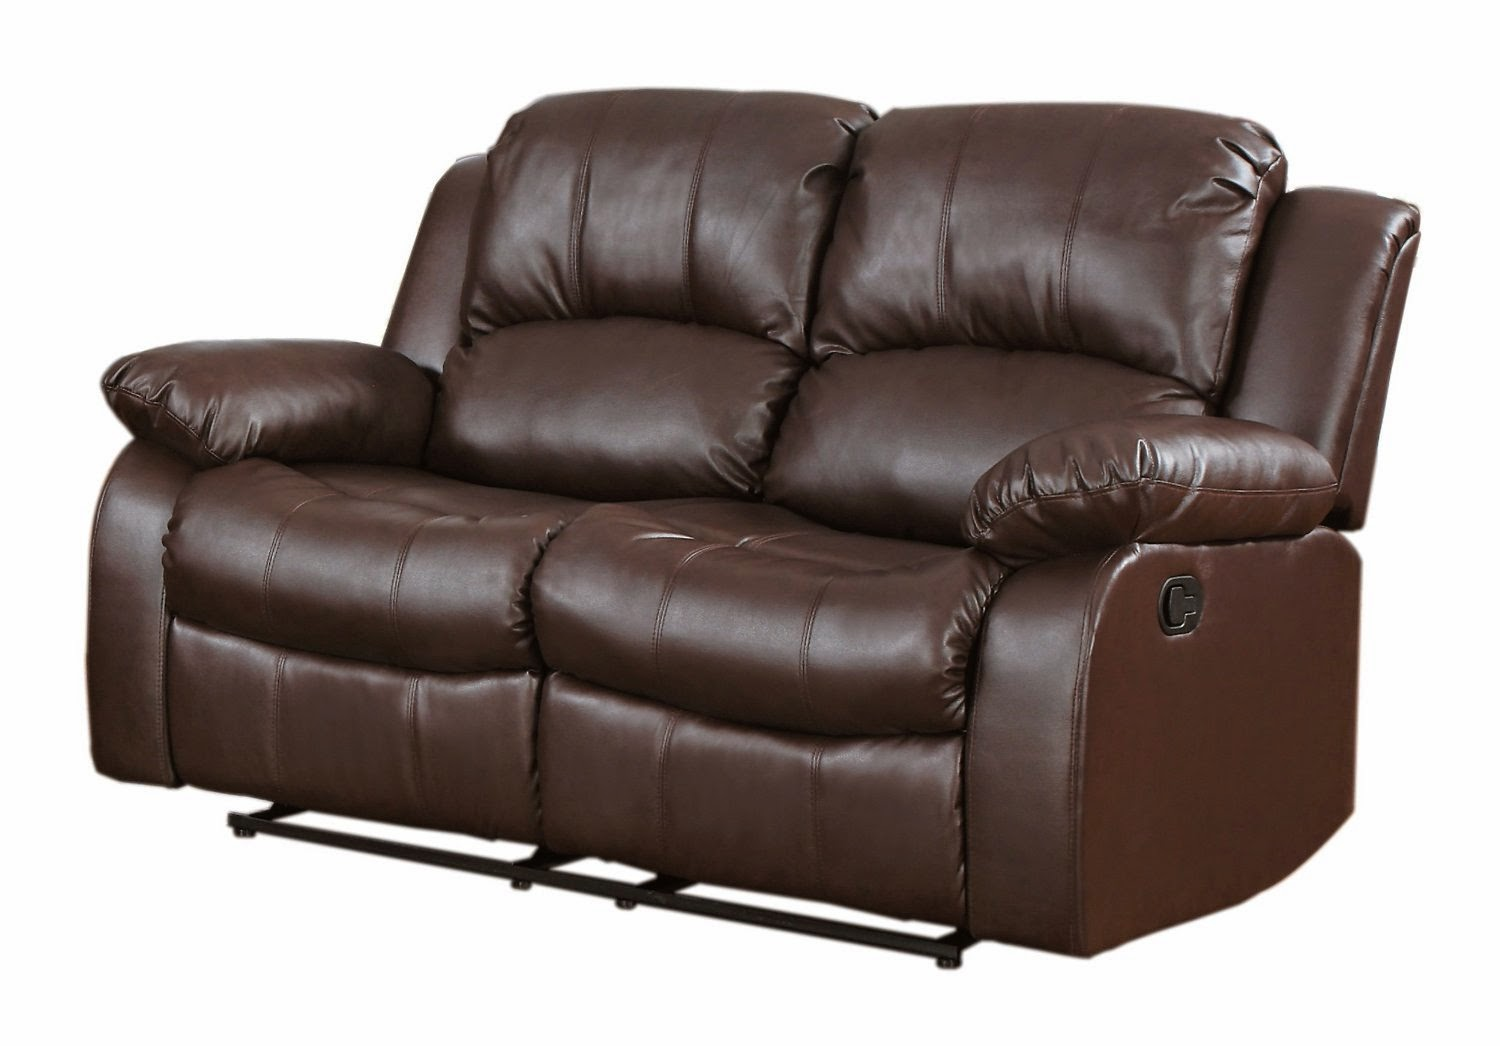 brown leather couch brown leather couch and loveseat